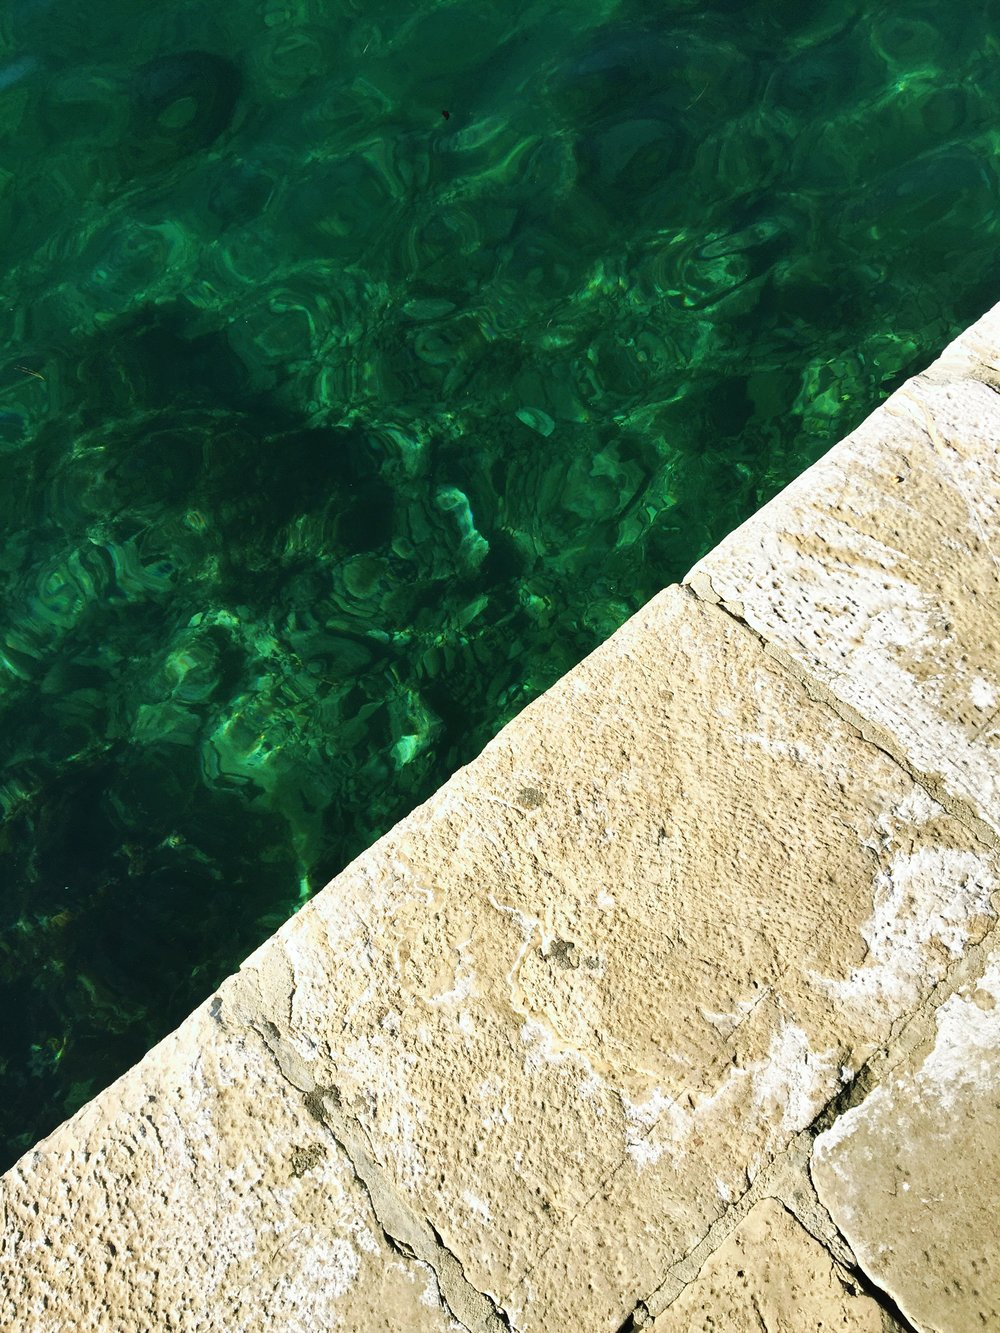 beautiful emerald-hued water